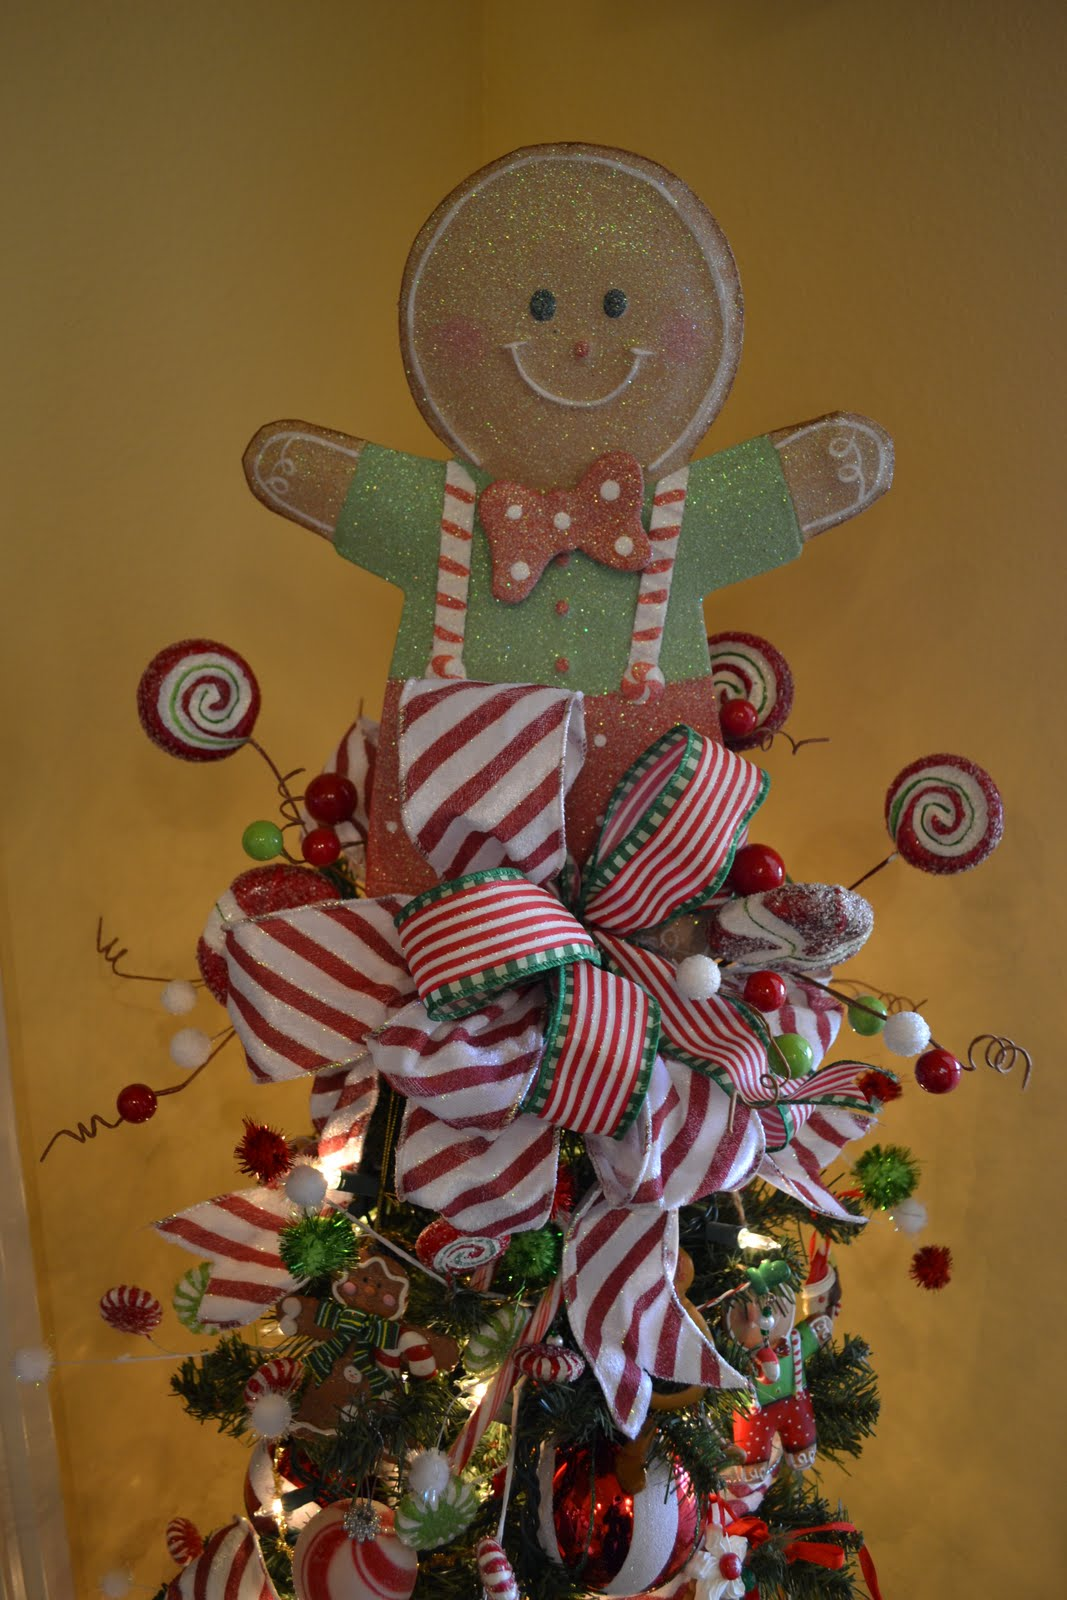 The tree is filled with gingerbread men ribbon candy balls and picks